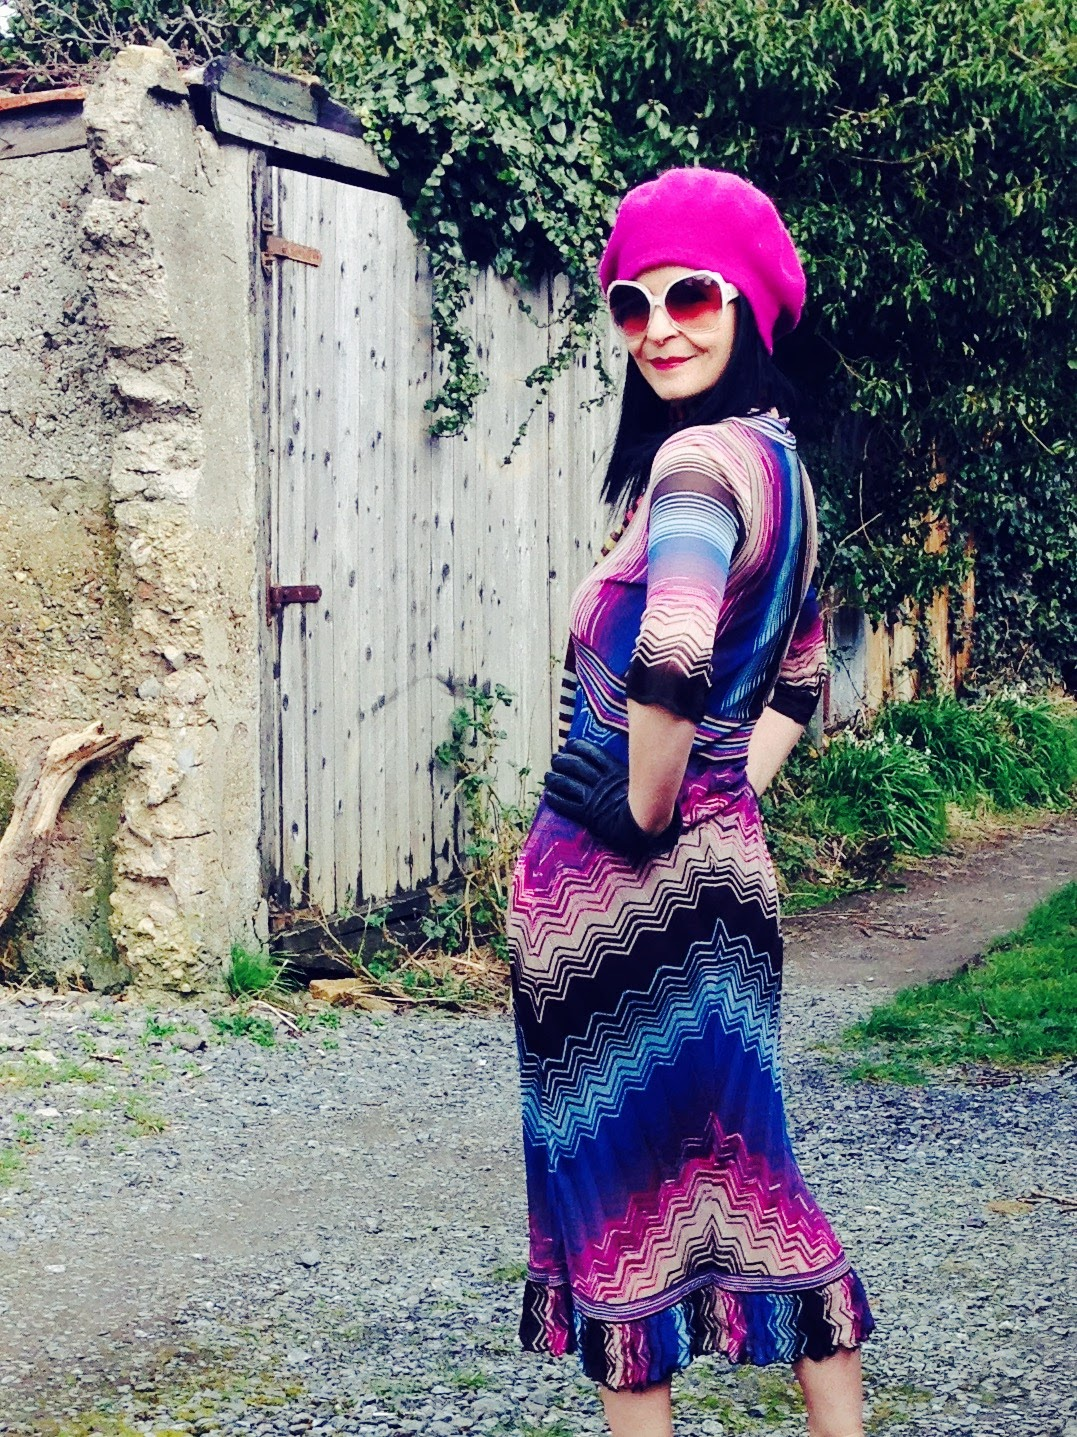 This great dress has a very vintage 1930's feel and accessorised with the Raspberry Beret and scarf make it more so.